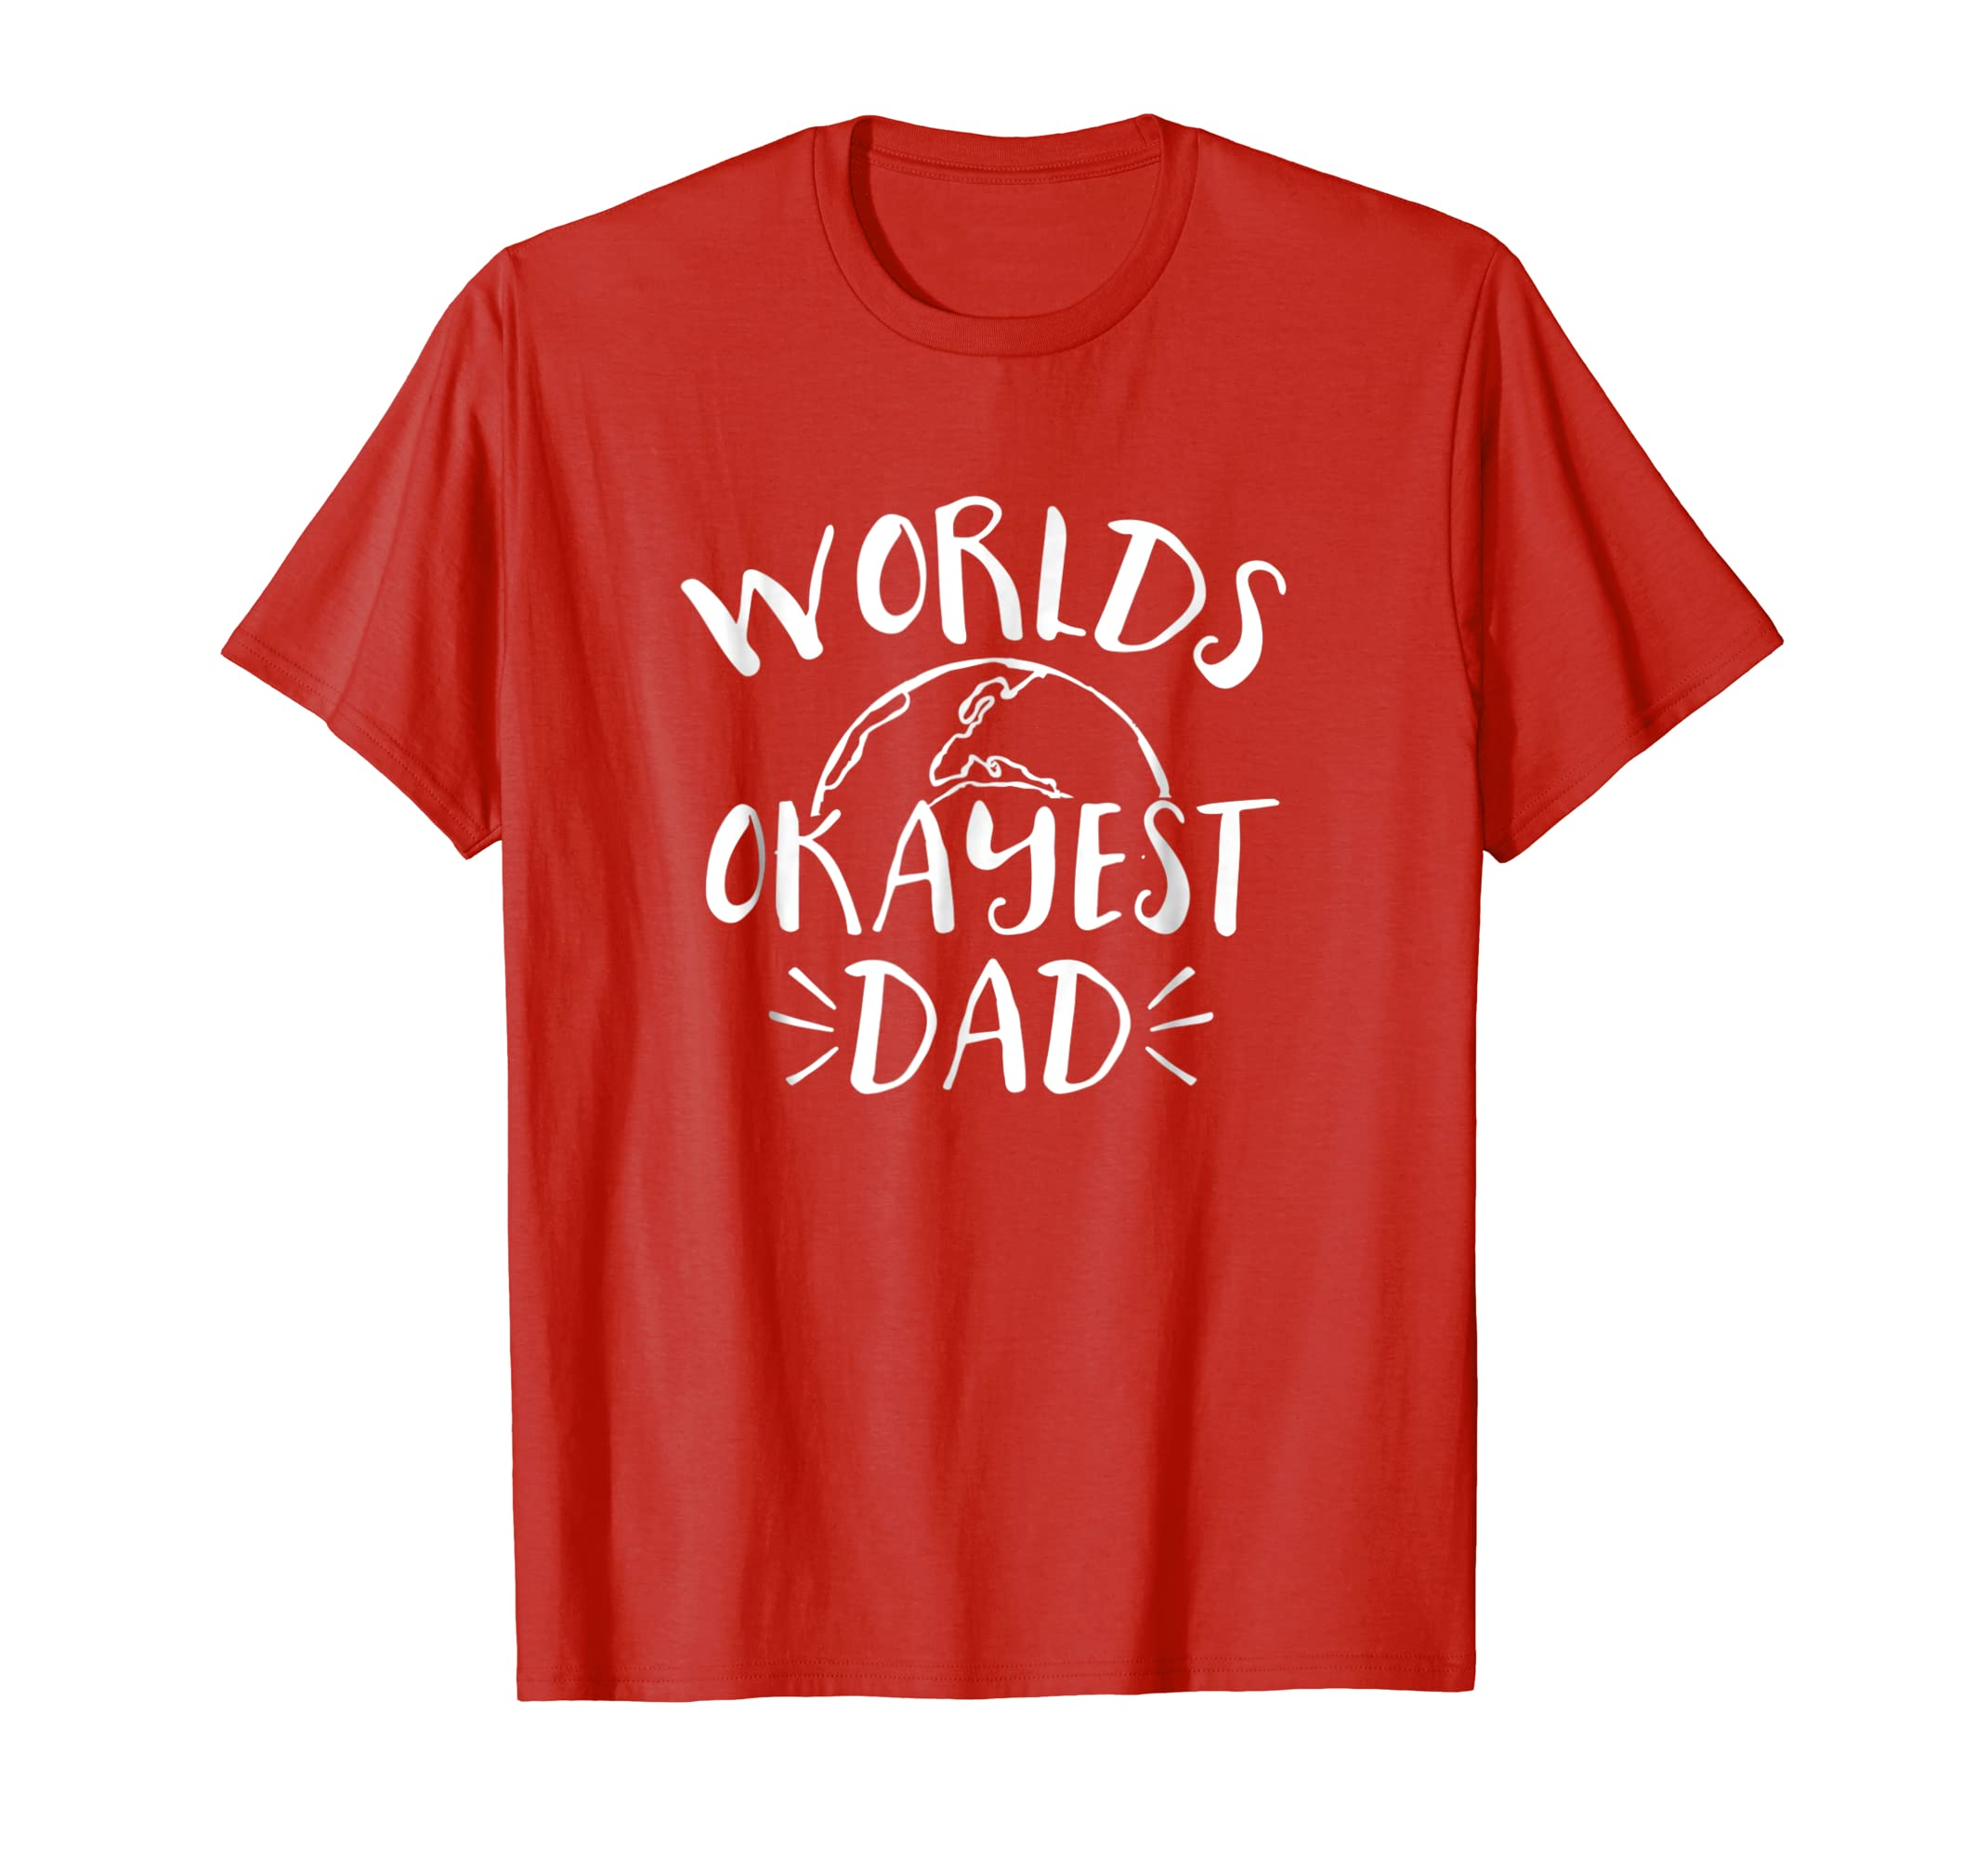 Worlds Okayest Dad Funny Shirt Fathers Day Birthday For Men- TPT